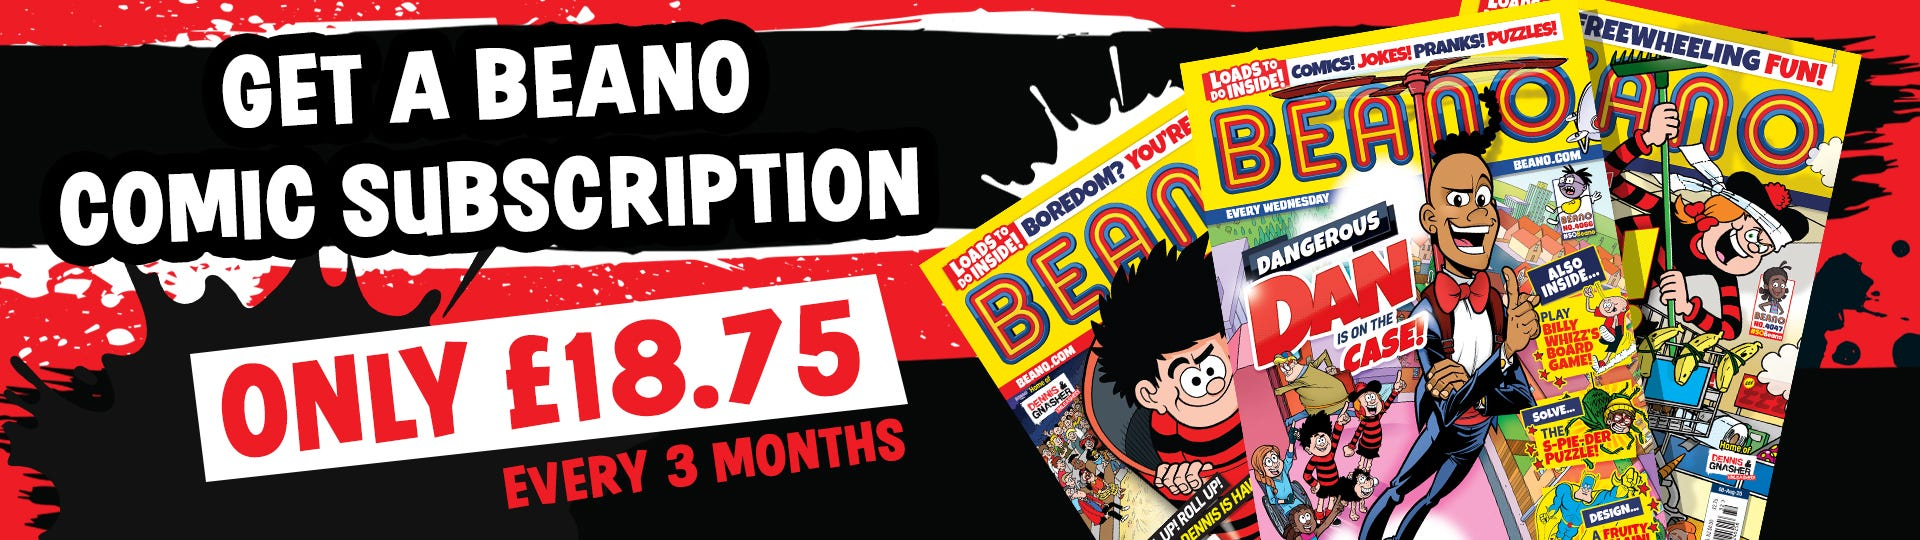 Get a Beano Comic Subscription! Only £18.75 every 3 months.